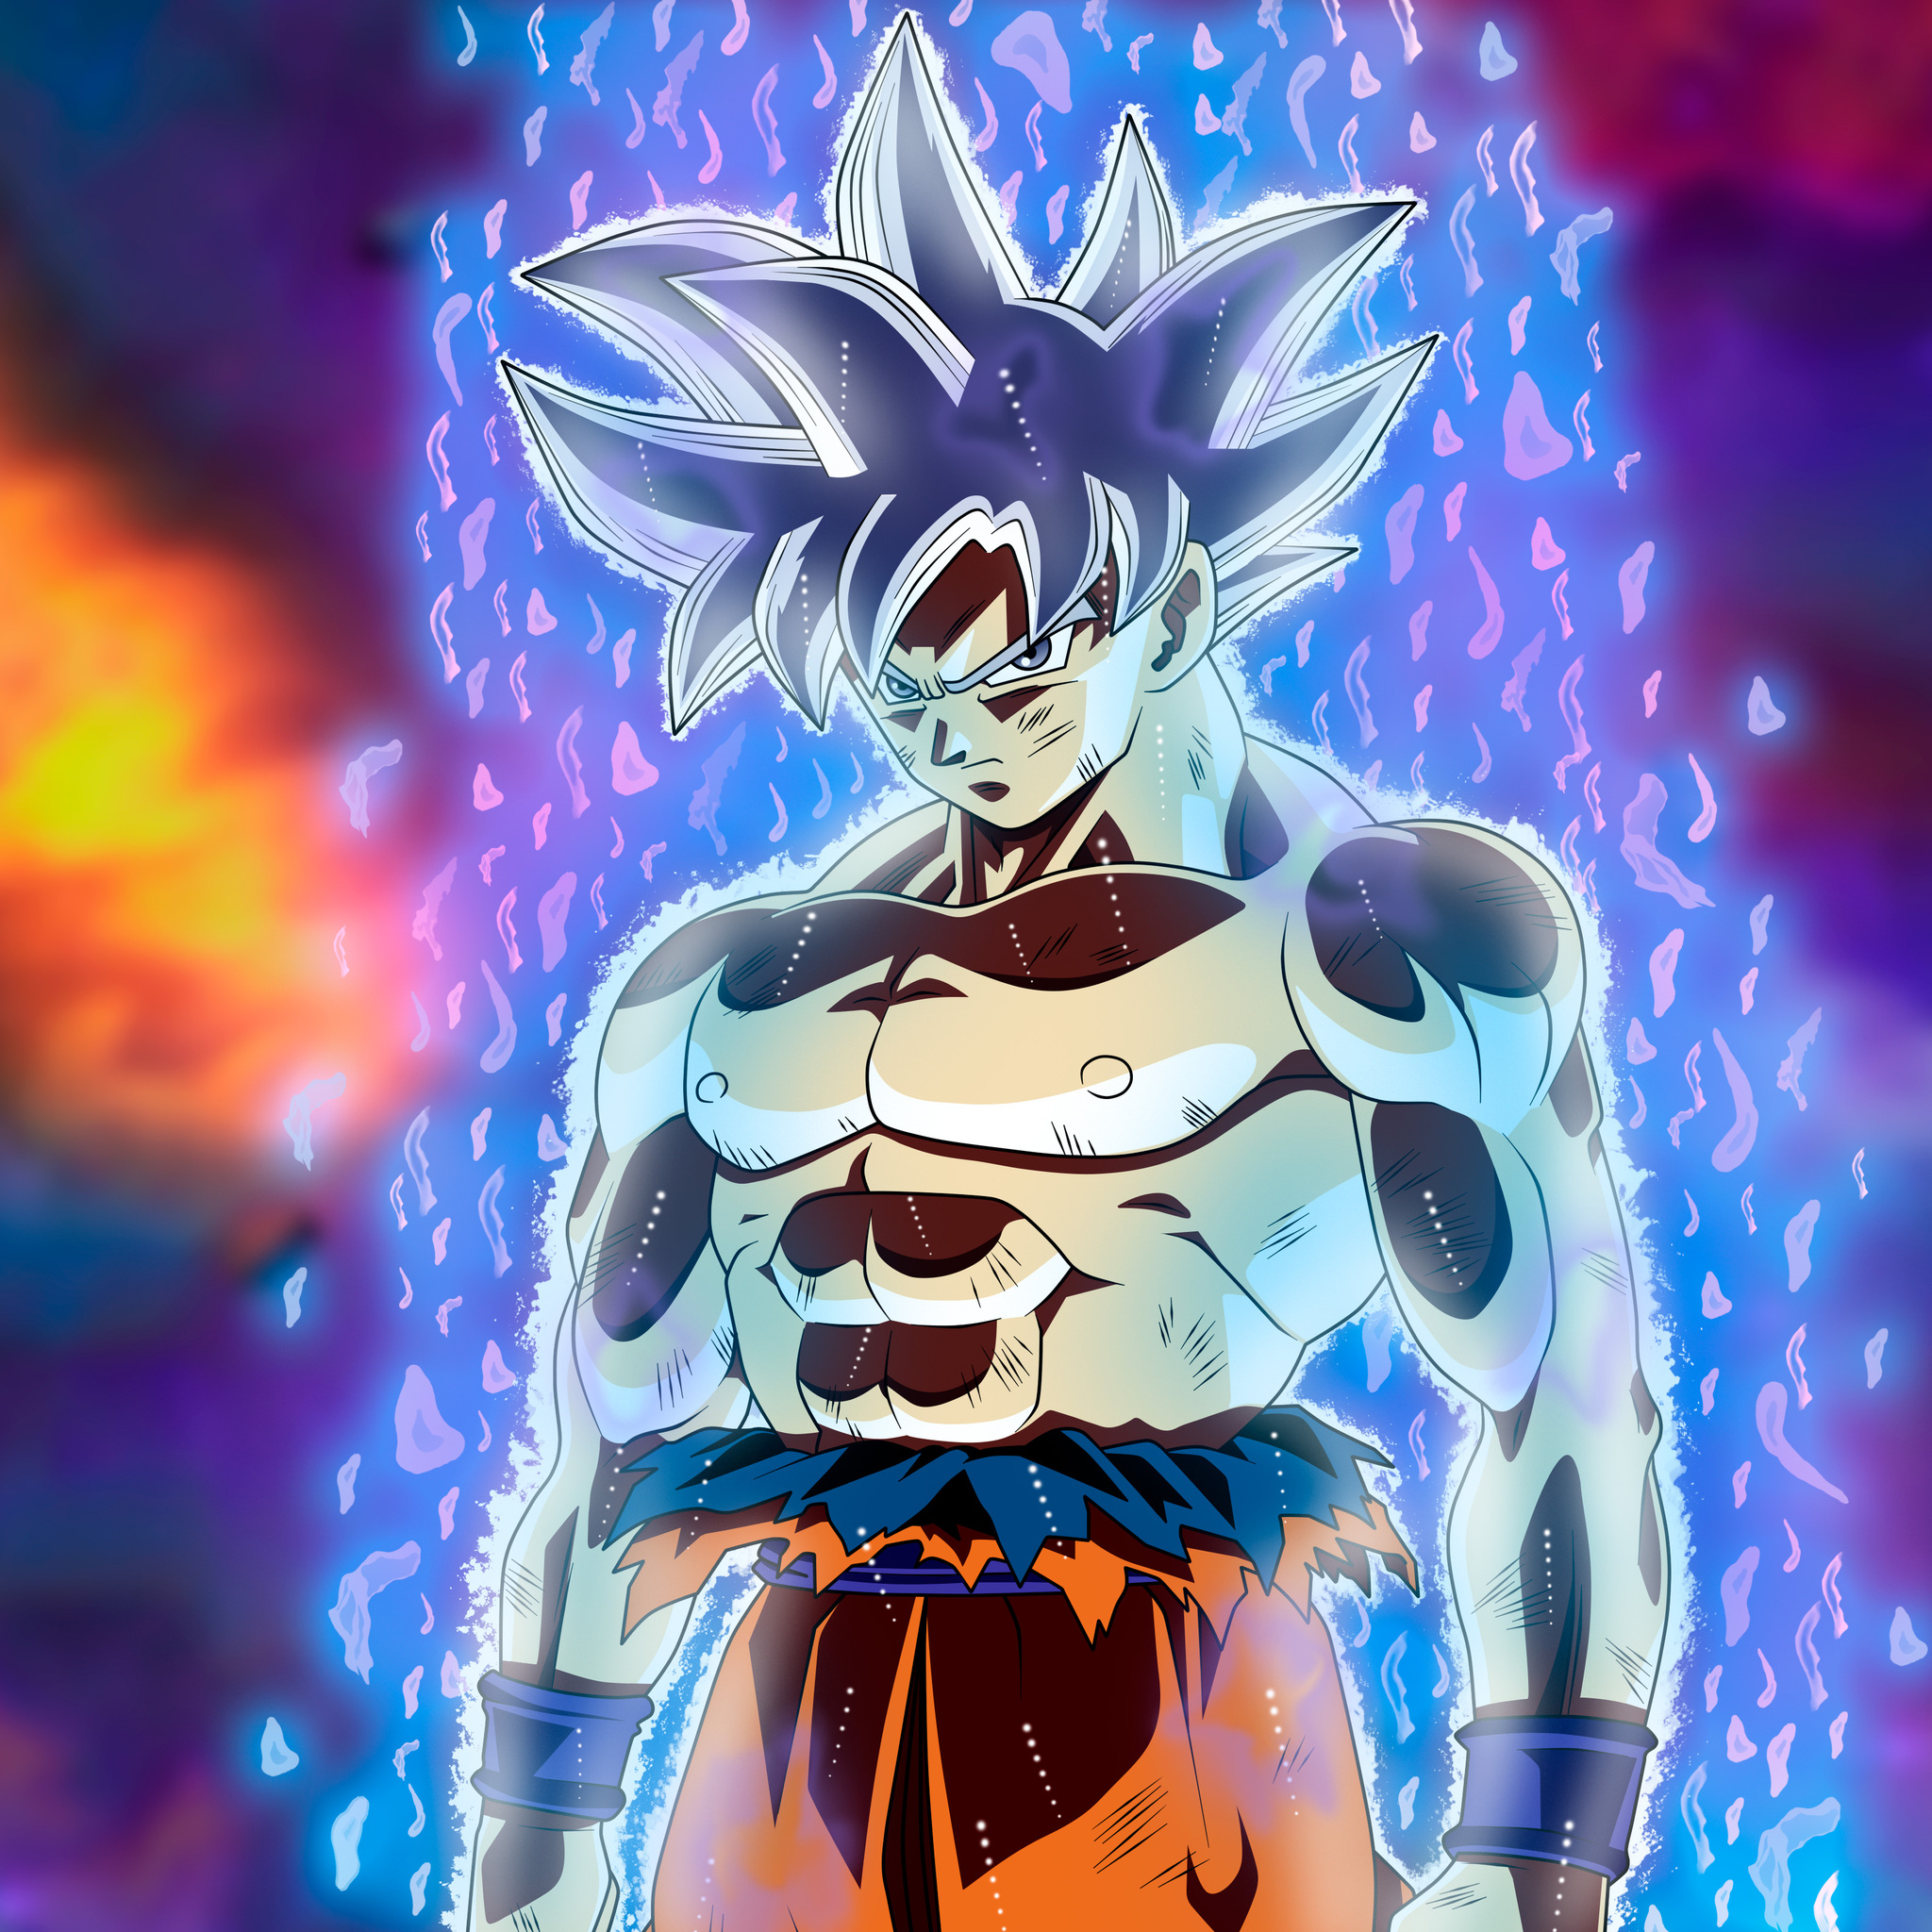 Dragon Ball Super Christmas Wallpaper: 2048x2048 Goku Migatte No Gokui Perfecto Ultra Instinct